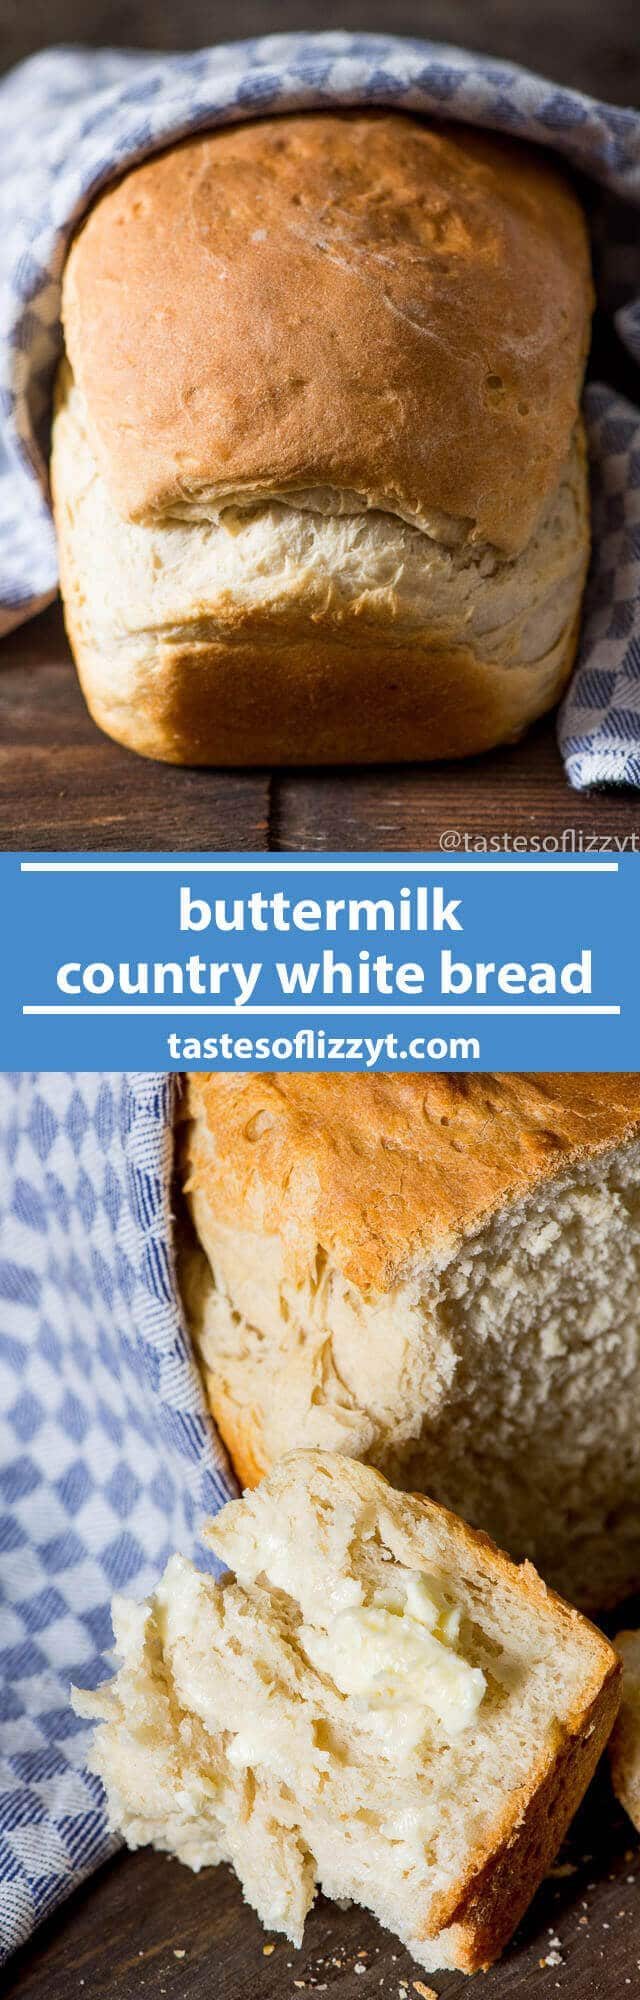 My grandma's recipe for a simple buttermilk country white bread. This is a thick, rustic bread with perfect texture and flavor. Make in the bread machine or by hand. easy homemade white bread / old bread recipe